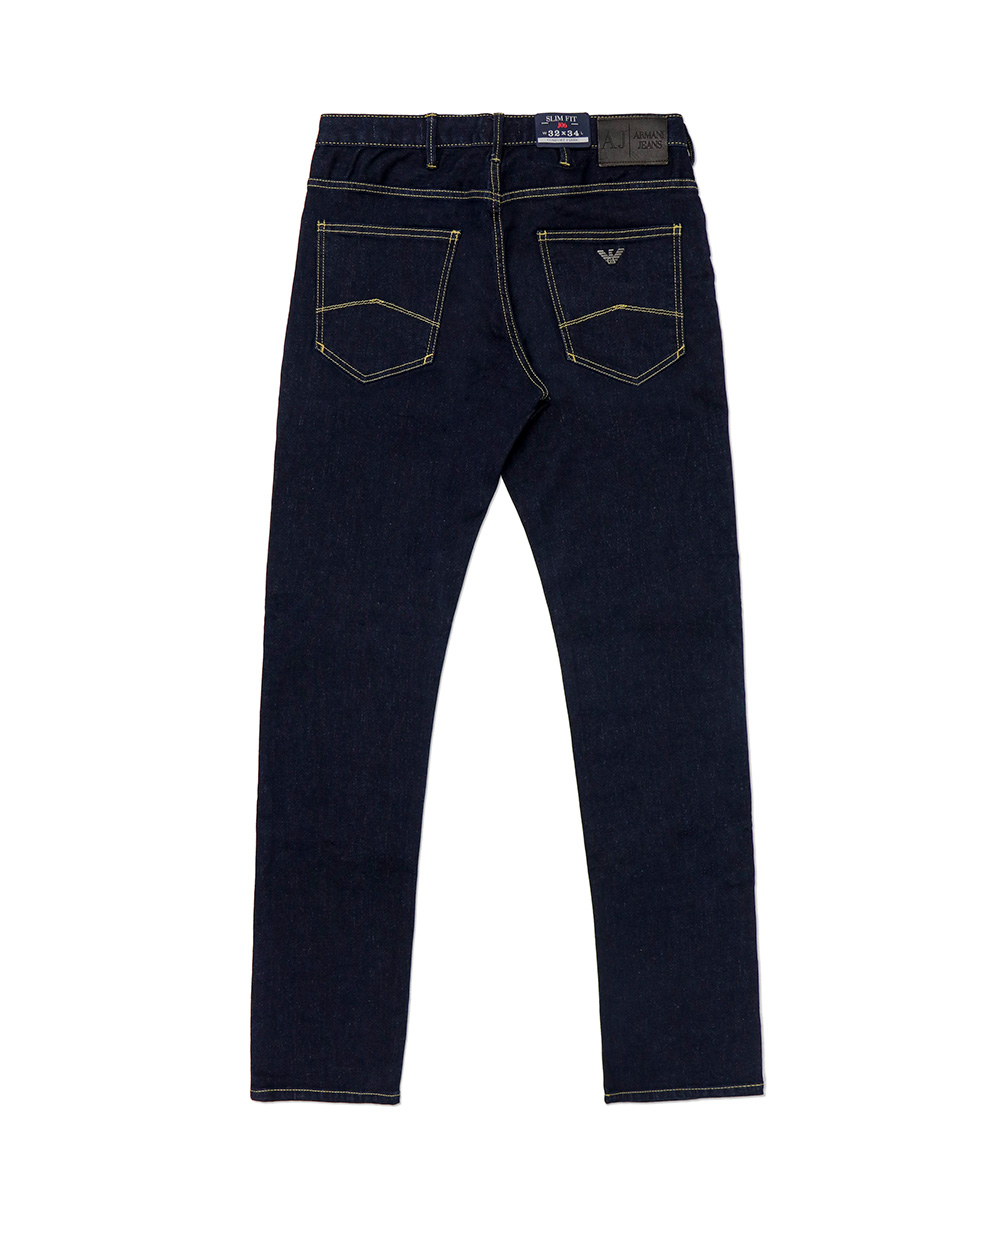 Cotton Stretch Slim-Fit Jeans 1